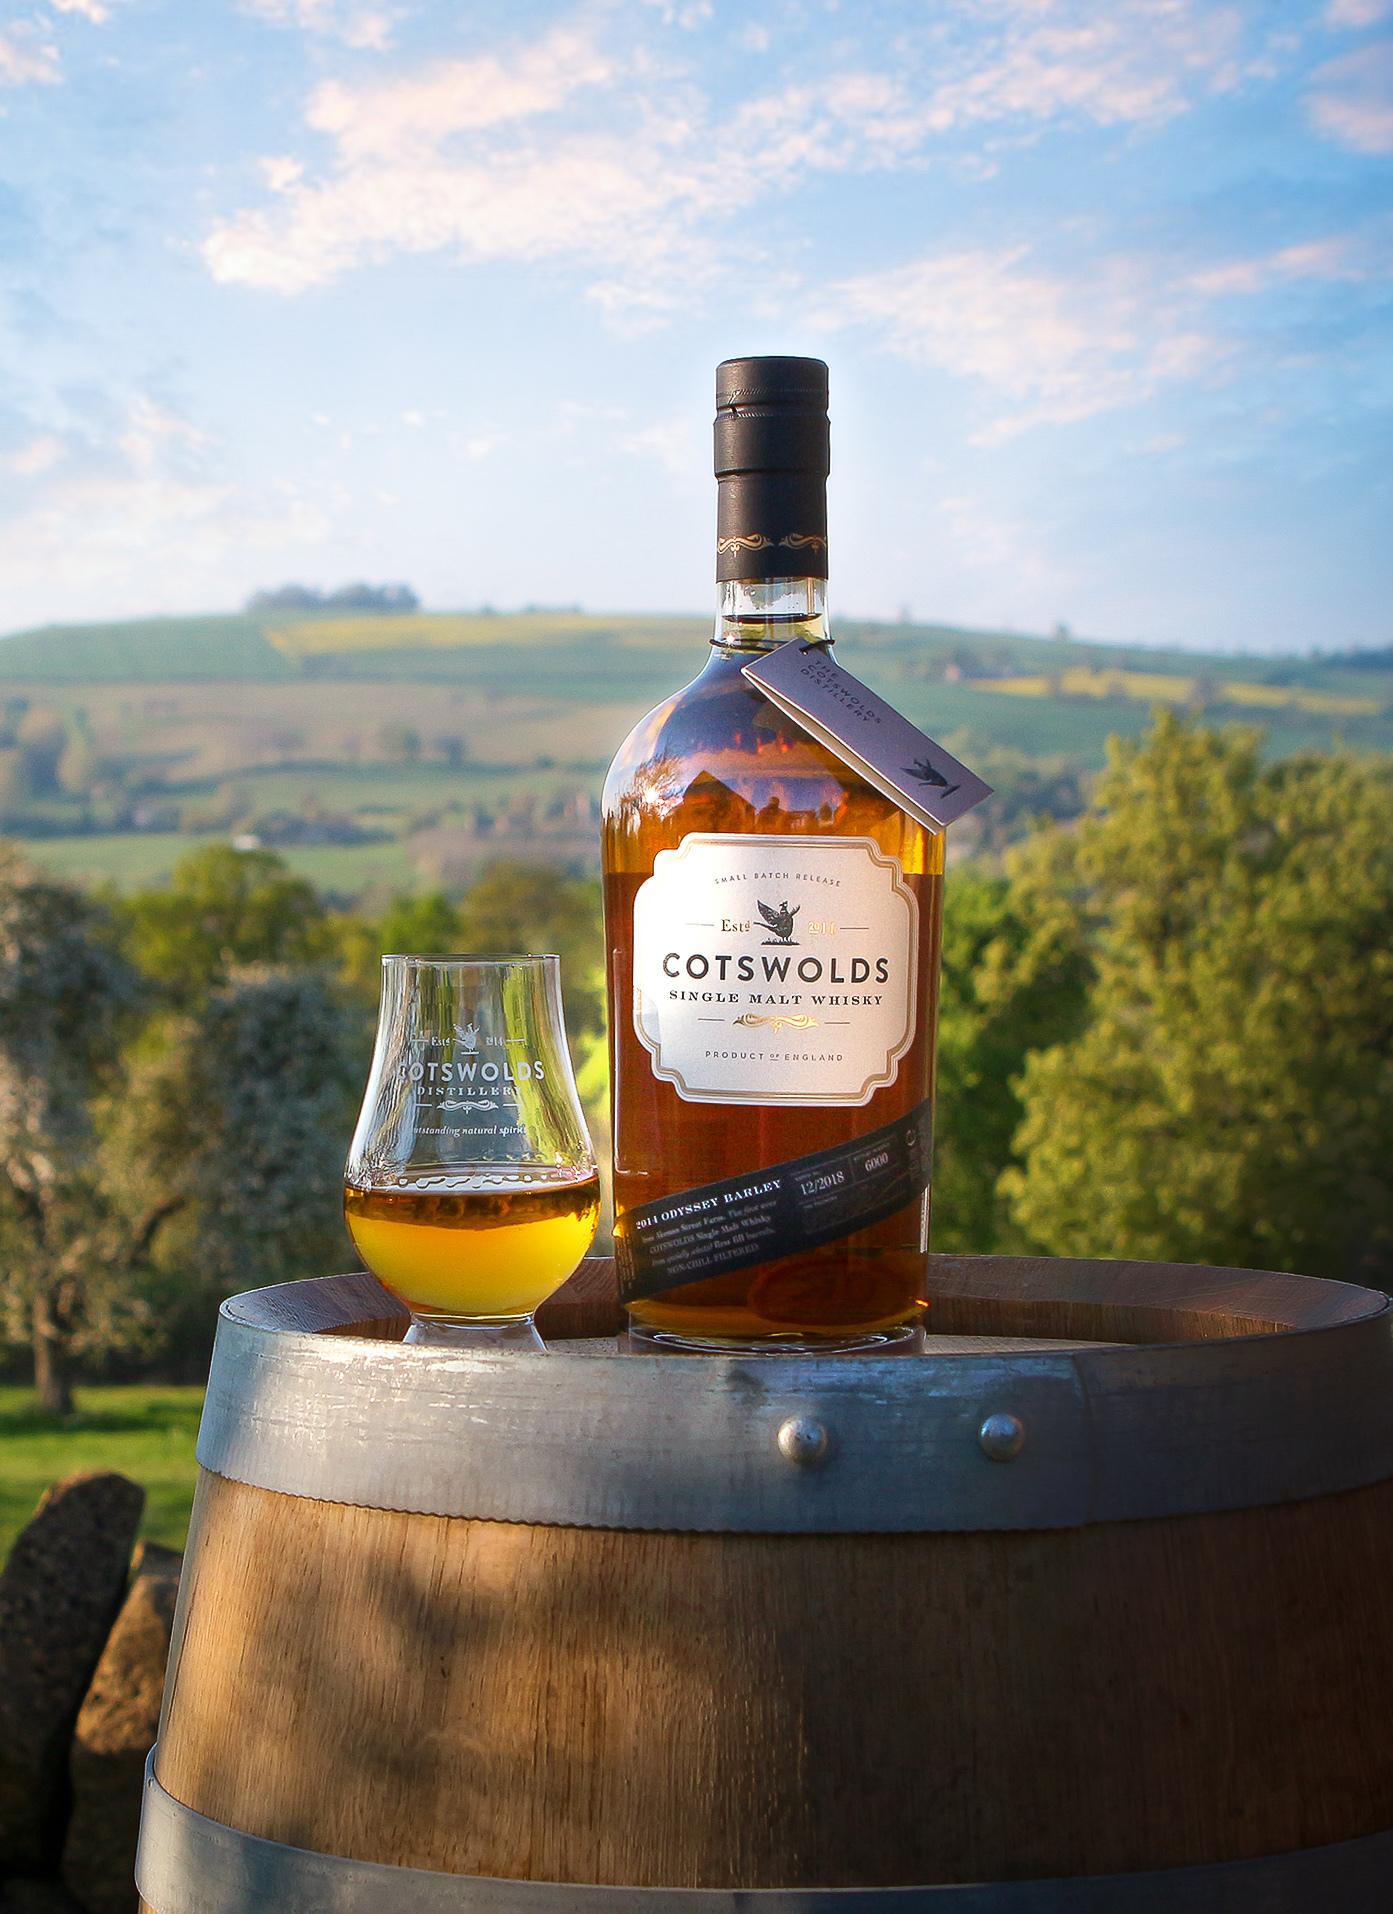 'Celebrate Burns Night with a Cotswolds single malt whisky'